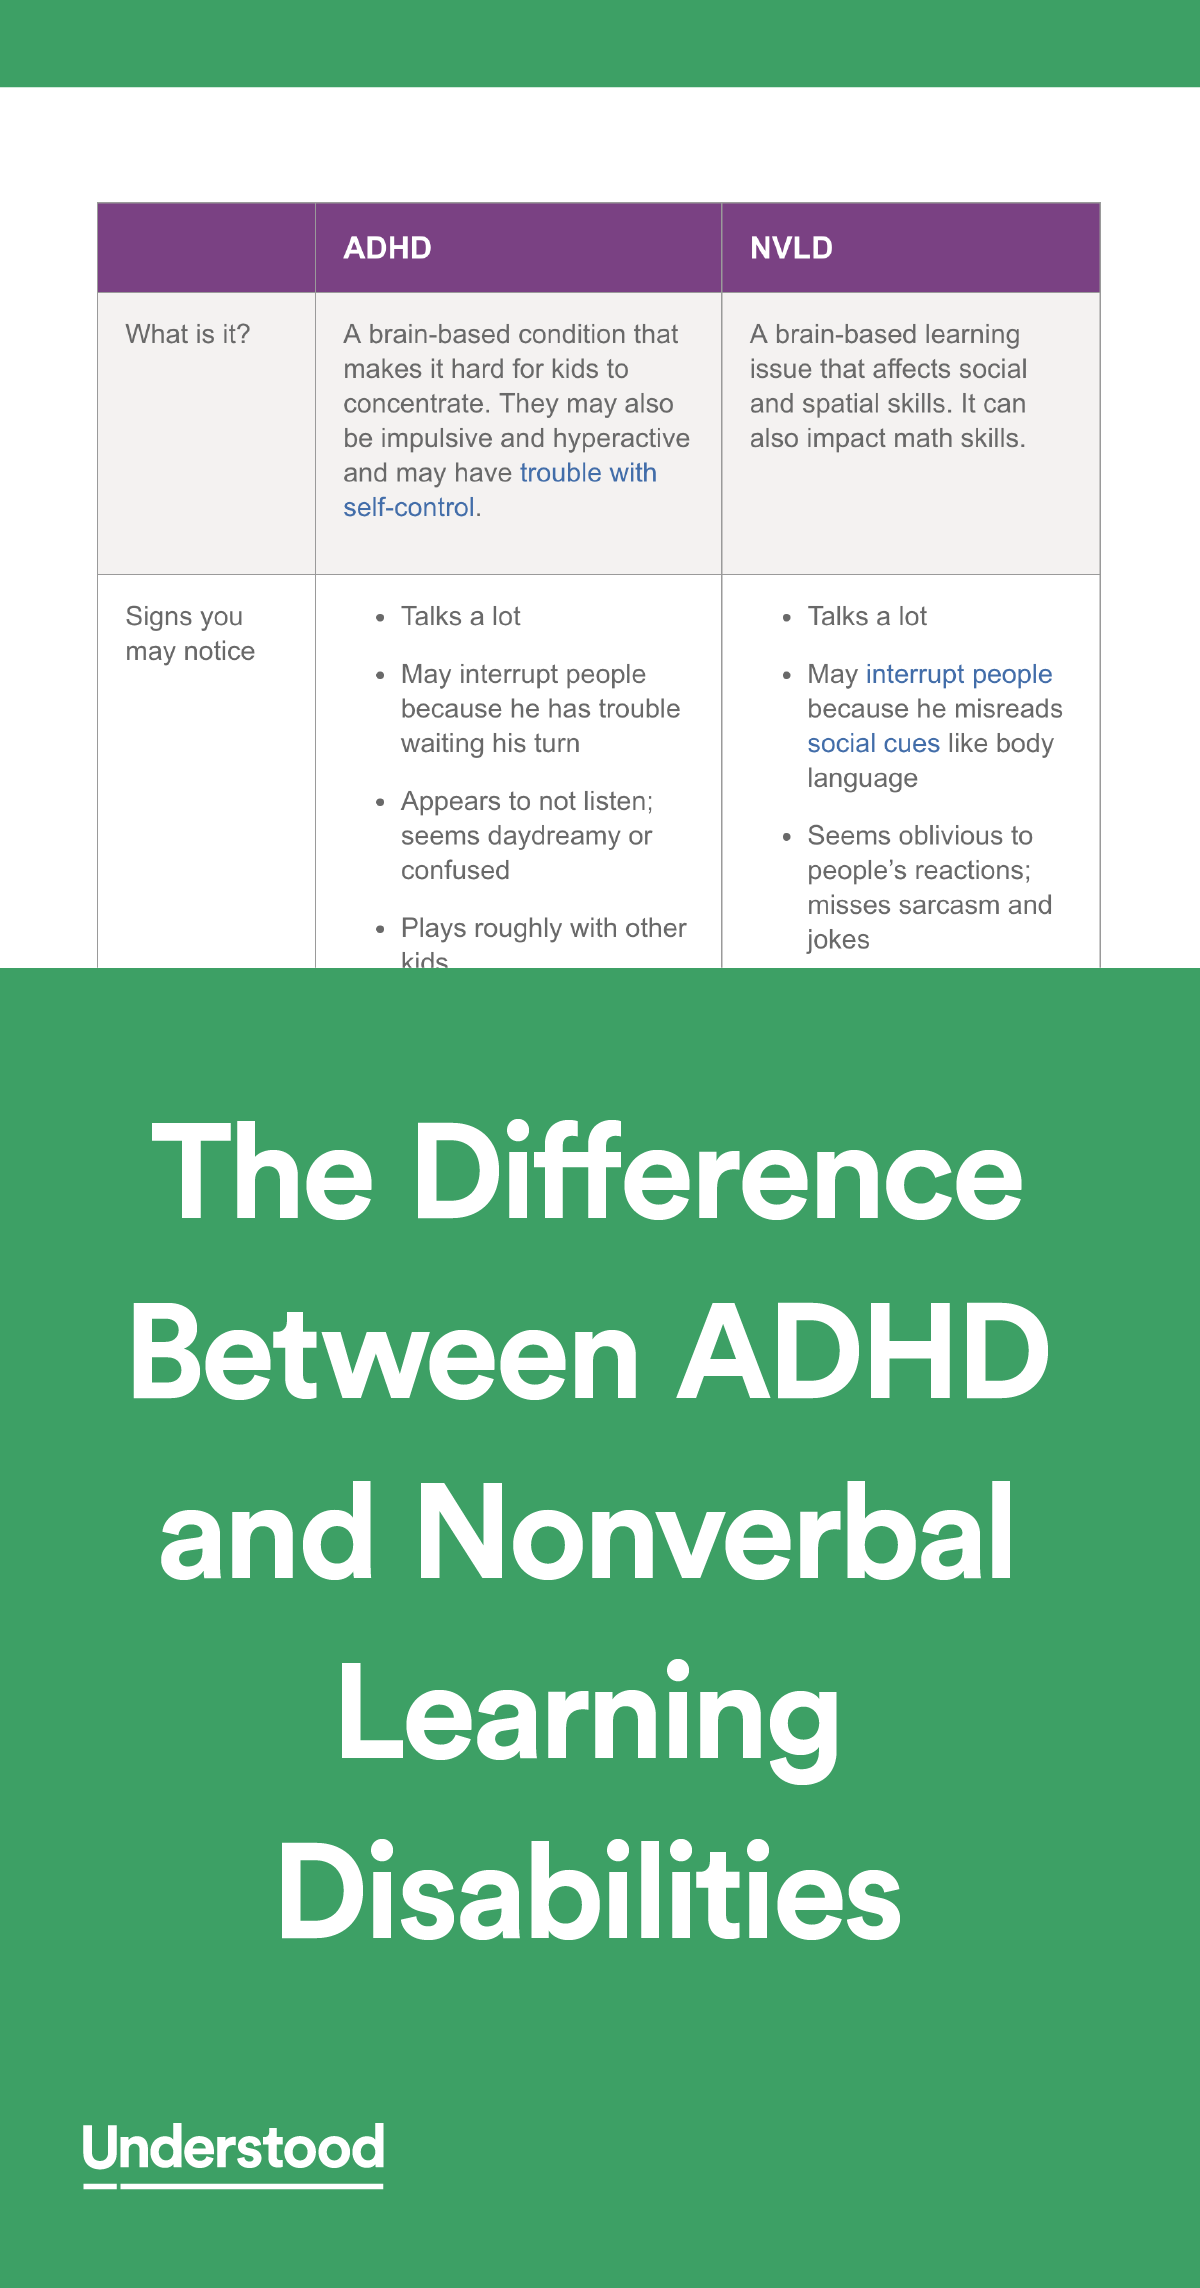 The Difference Between ADHD and Nonverbal Learning Disabilities